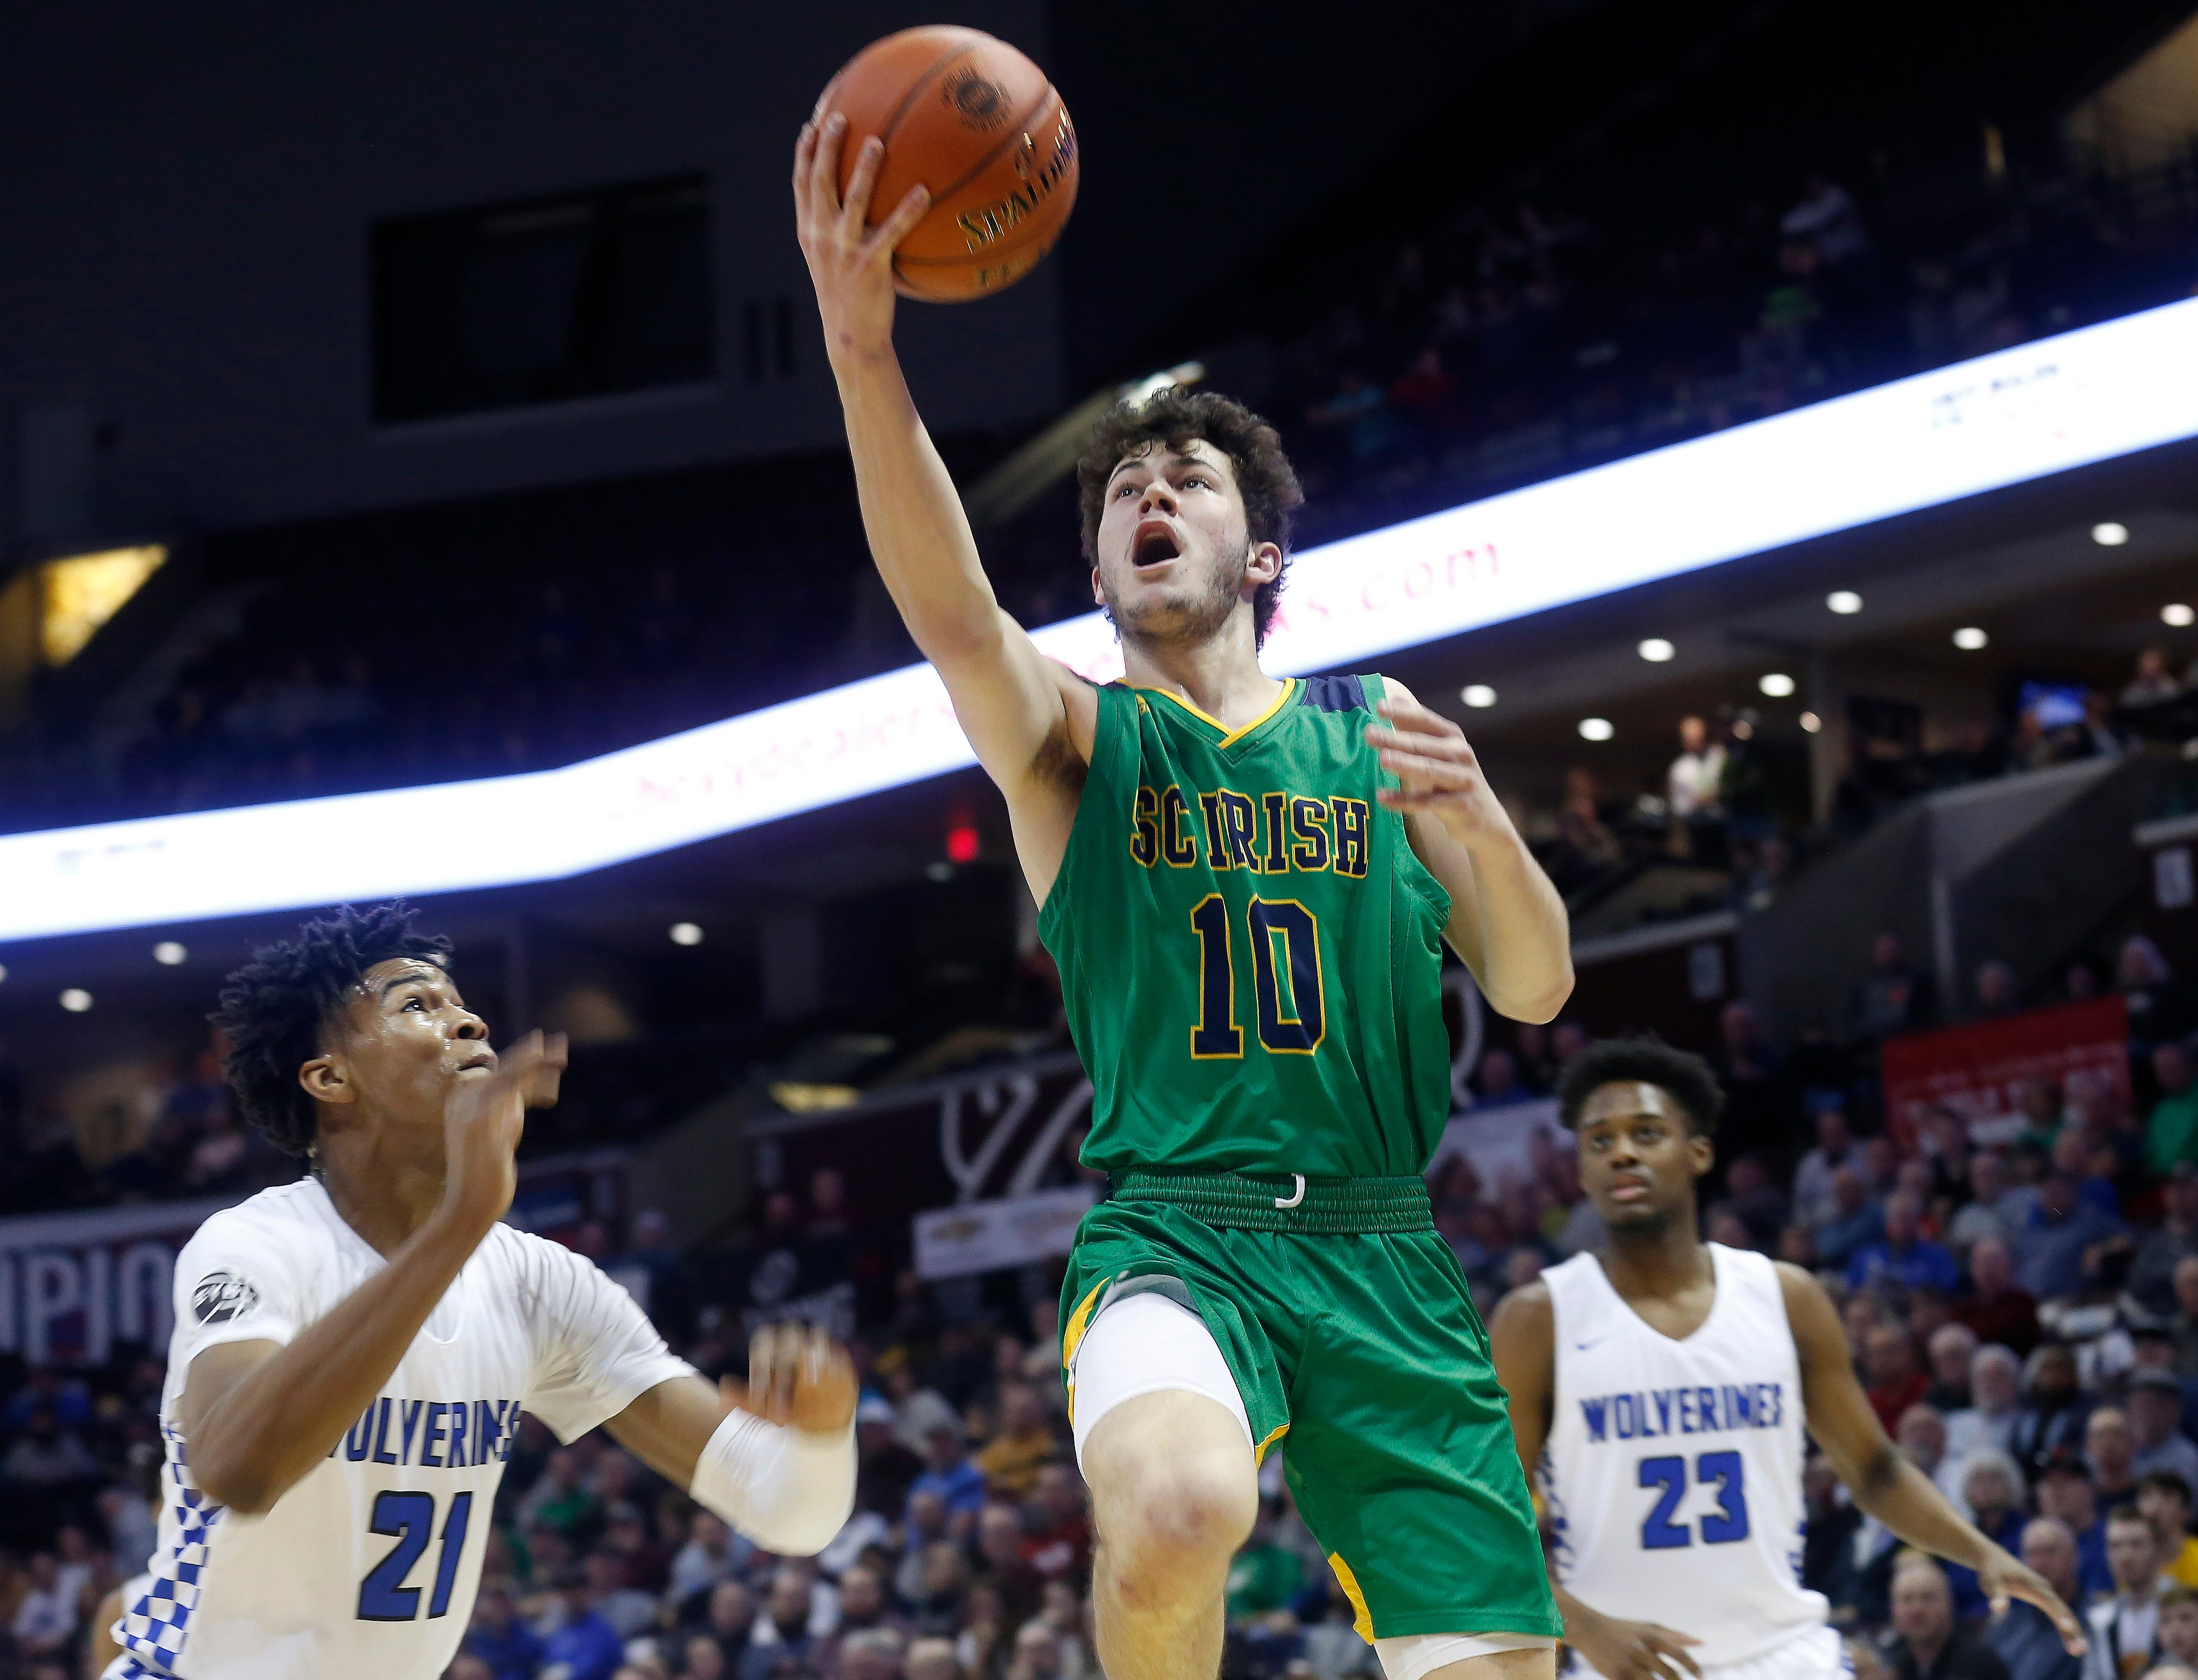 Michael Manzardo, of Springfield Catholic, puts up a shot during the Irish's 69-59 loss to Vashon in the Class 3 state championship game at JQH Arena on Friday, March 8, 2019.